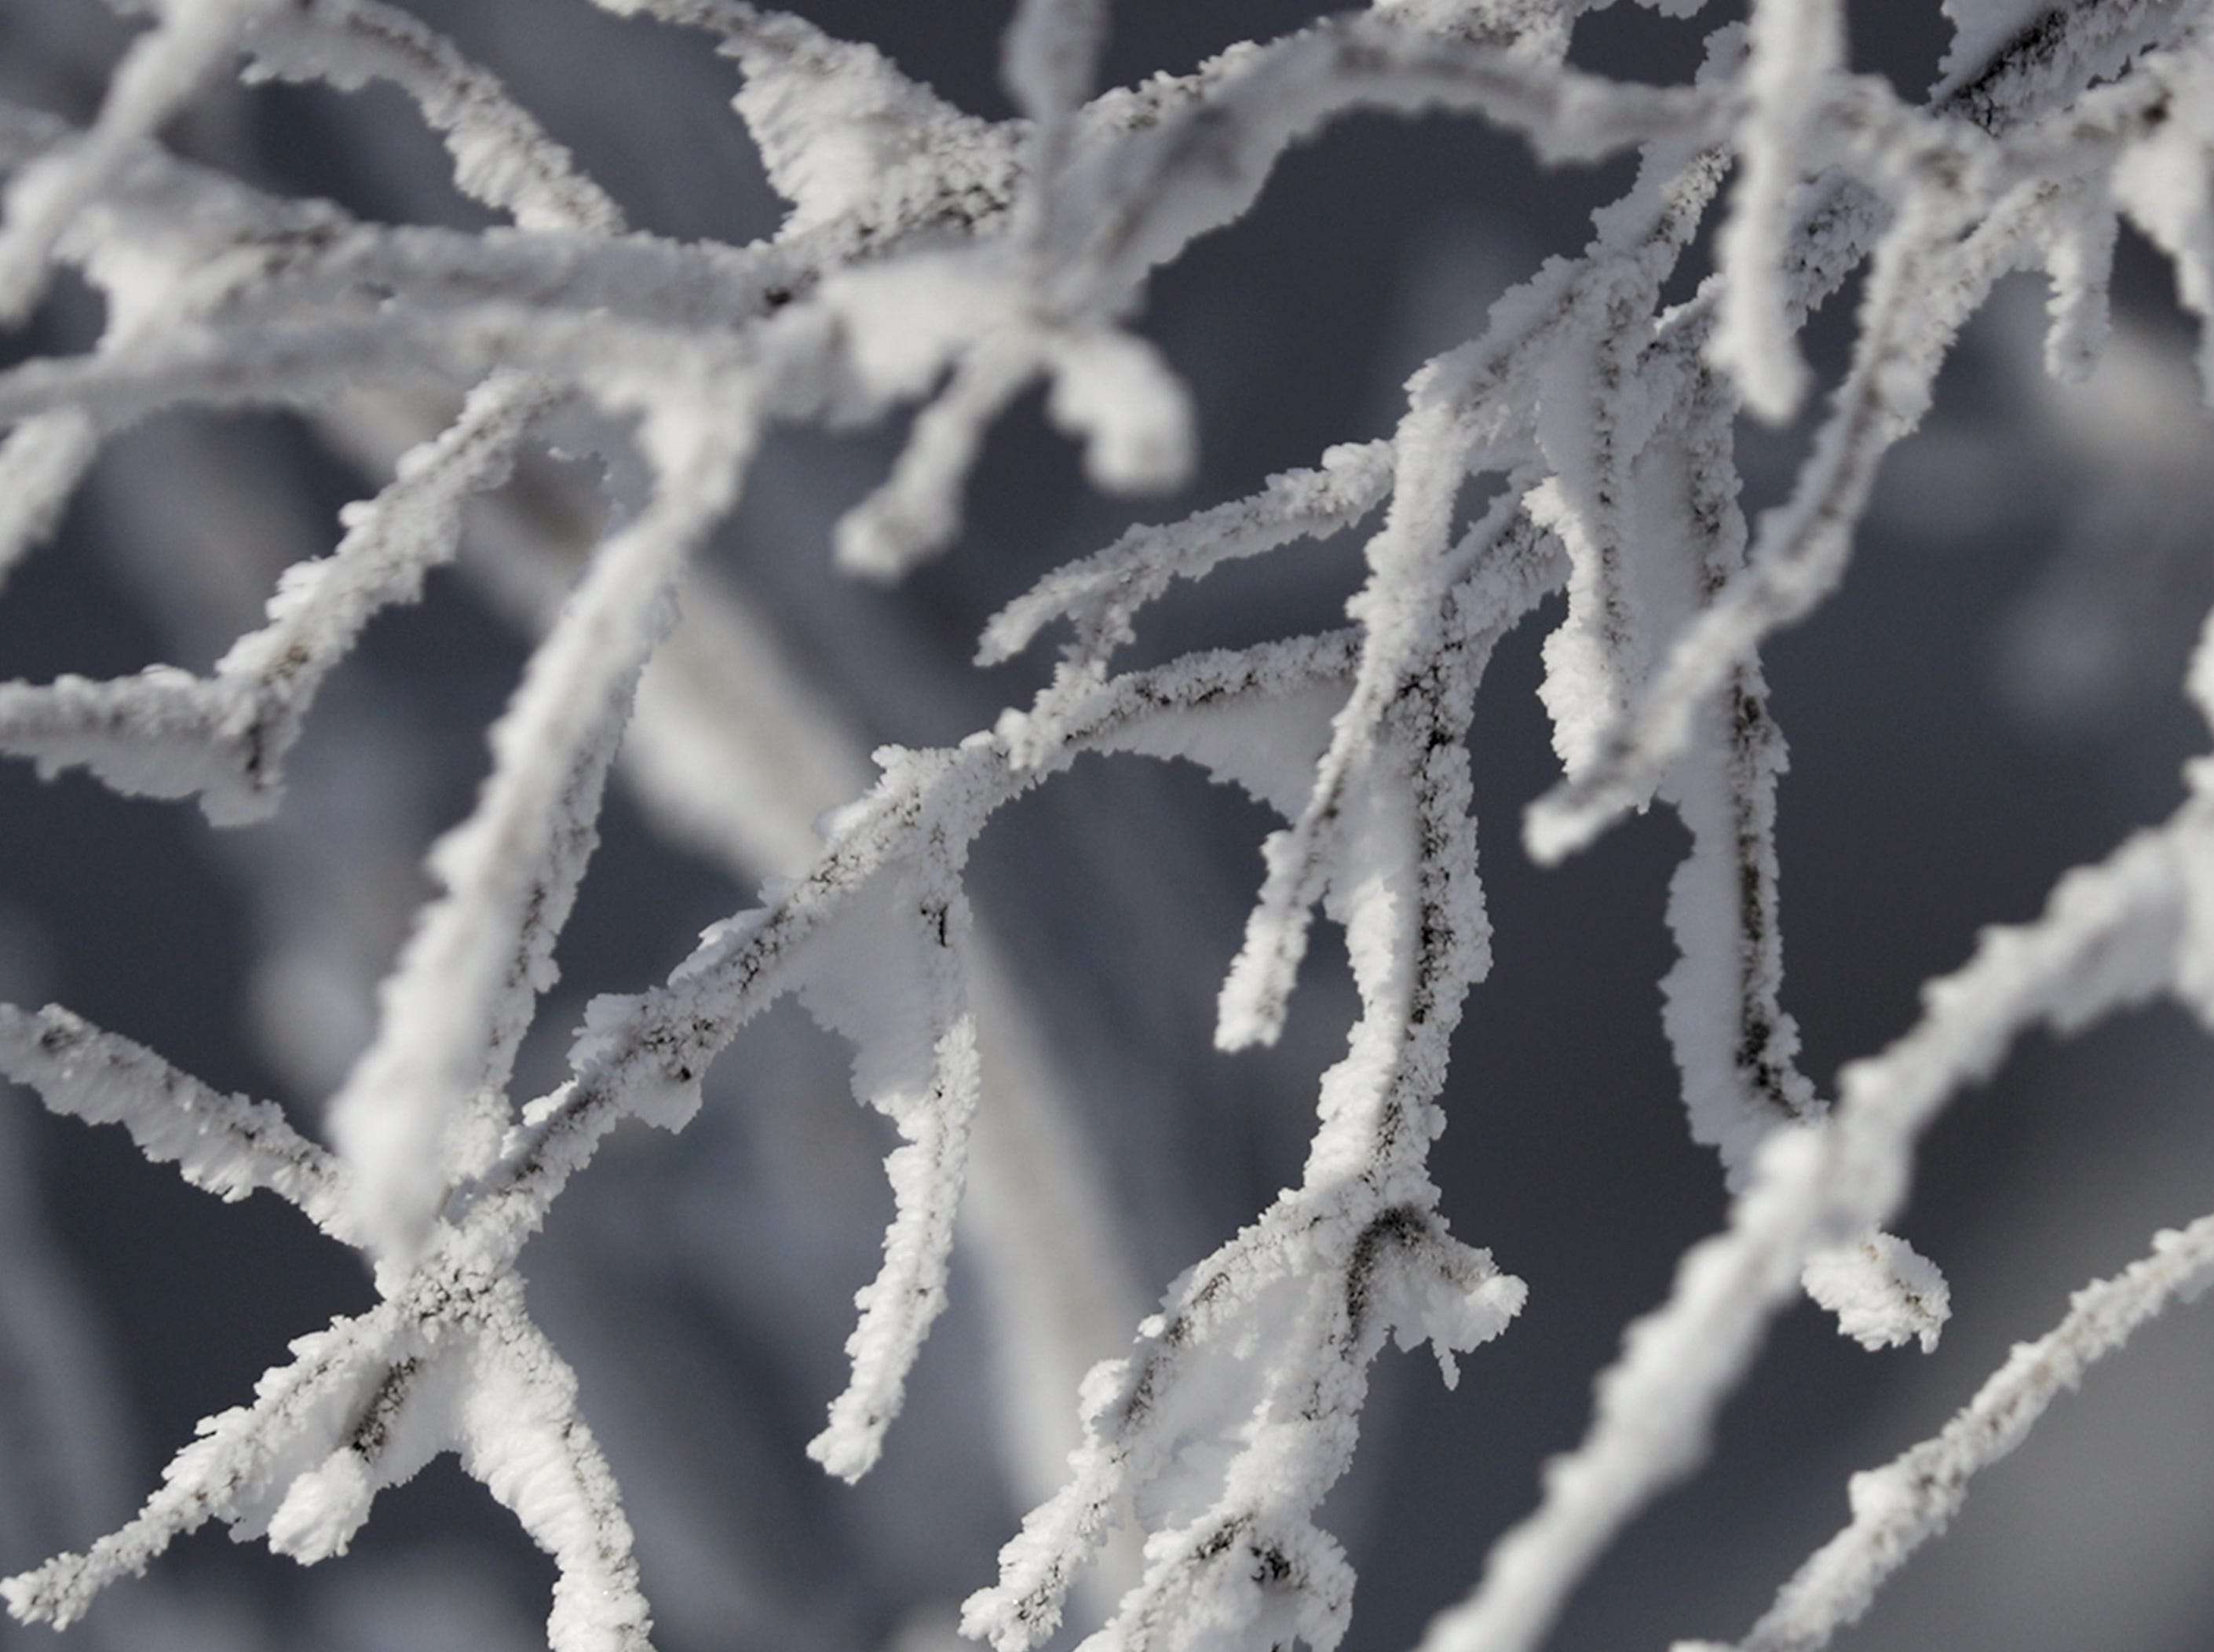 Frost laden branches during a polar vortex that brought extremely cold temperatures and dangerous wind chill temperatures on Wednesday, January 30, 2019, in Kaukauna, Wis.